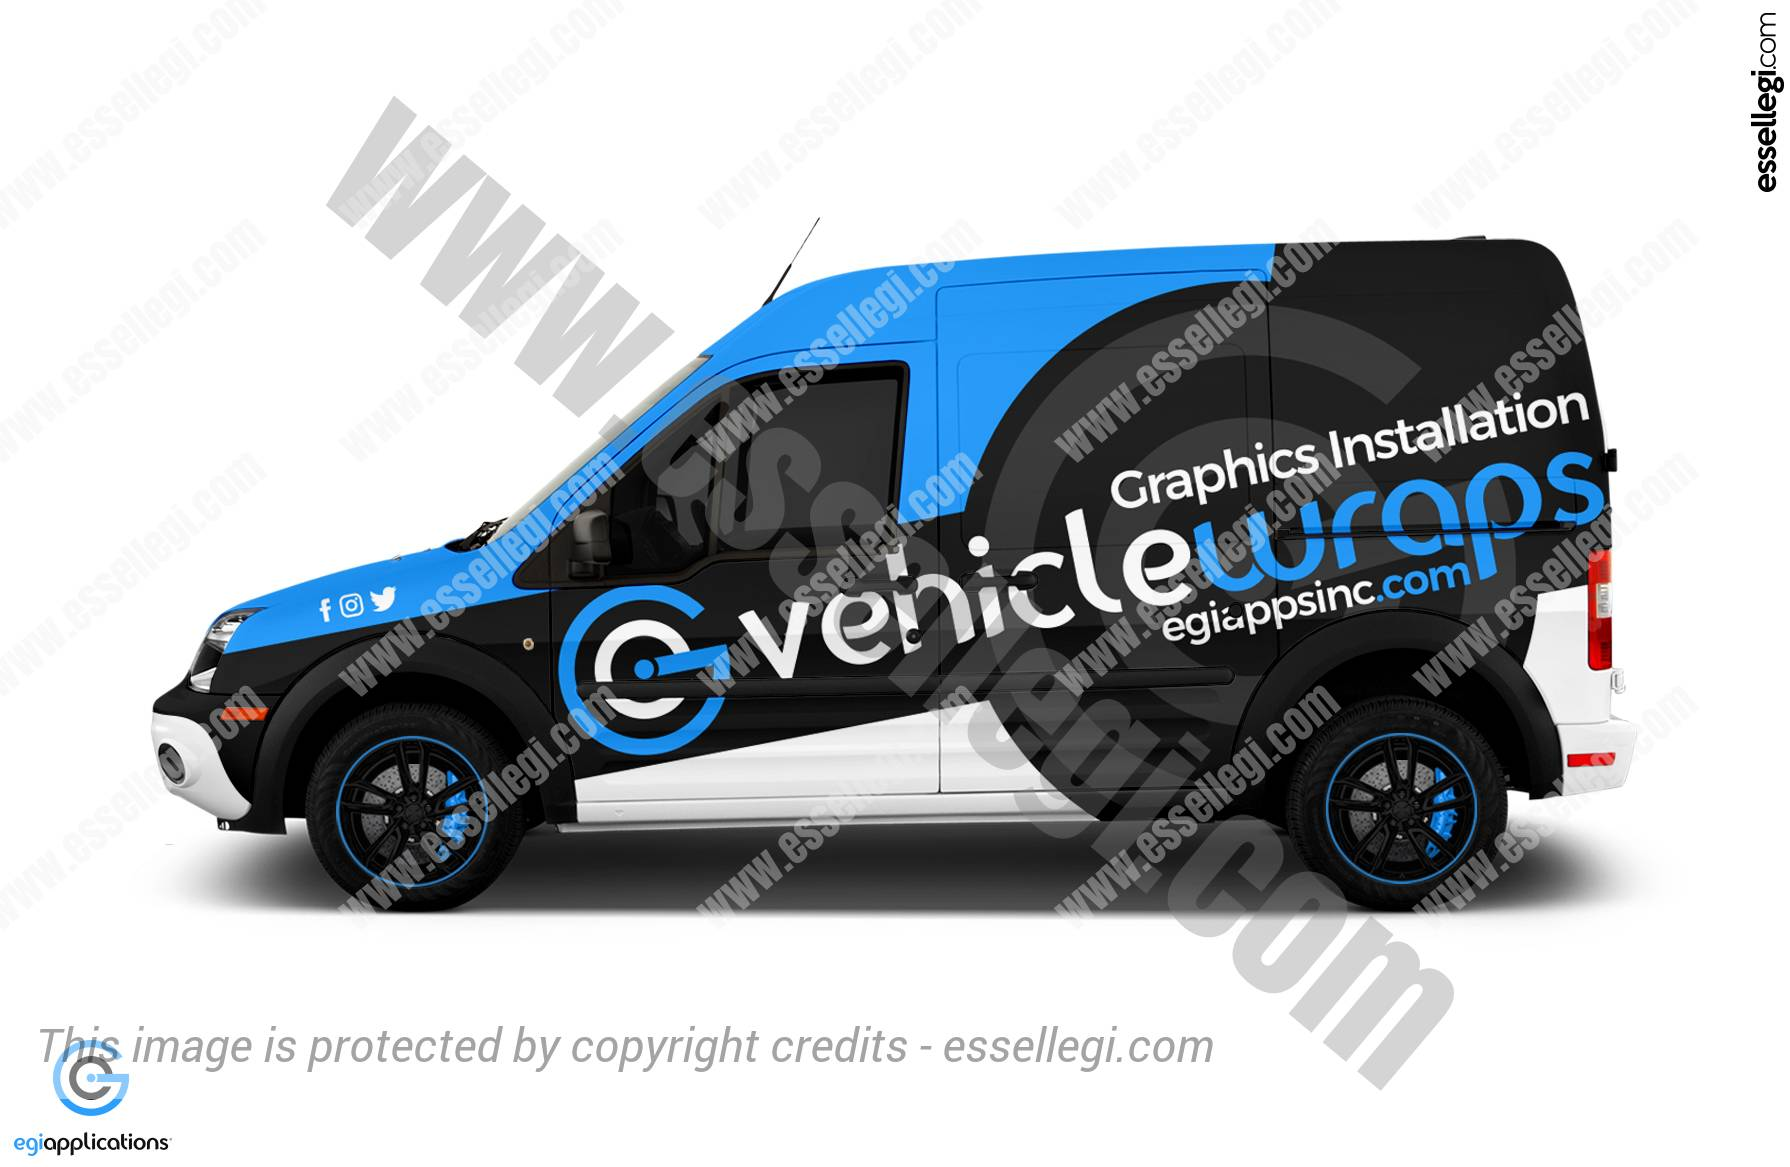 EGI APPLICATIONS | VAN WRAP DESIGN 🇺🇸